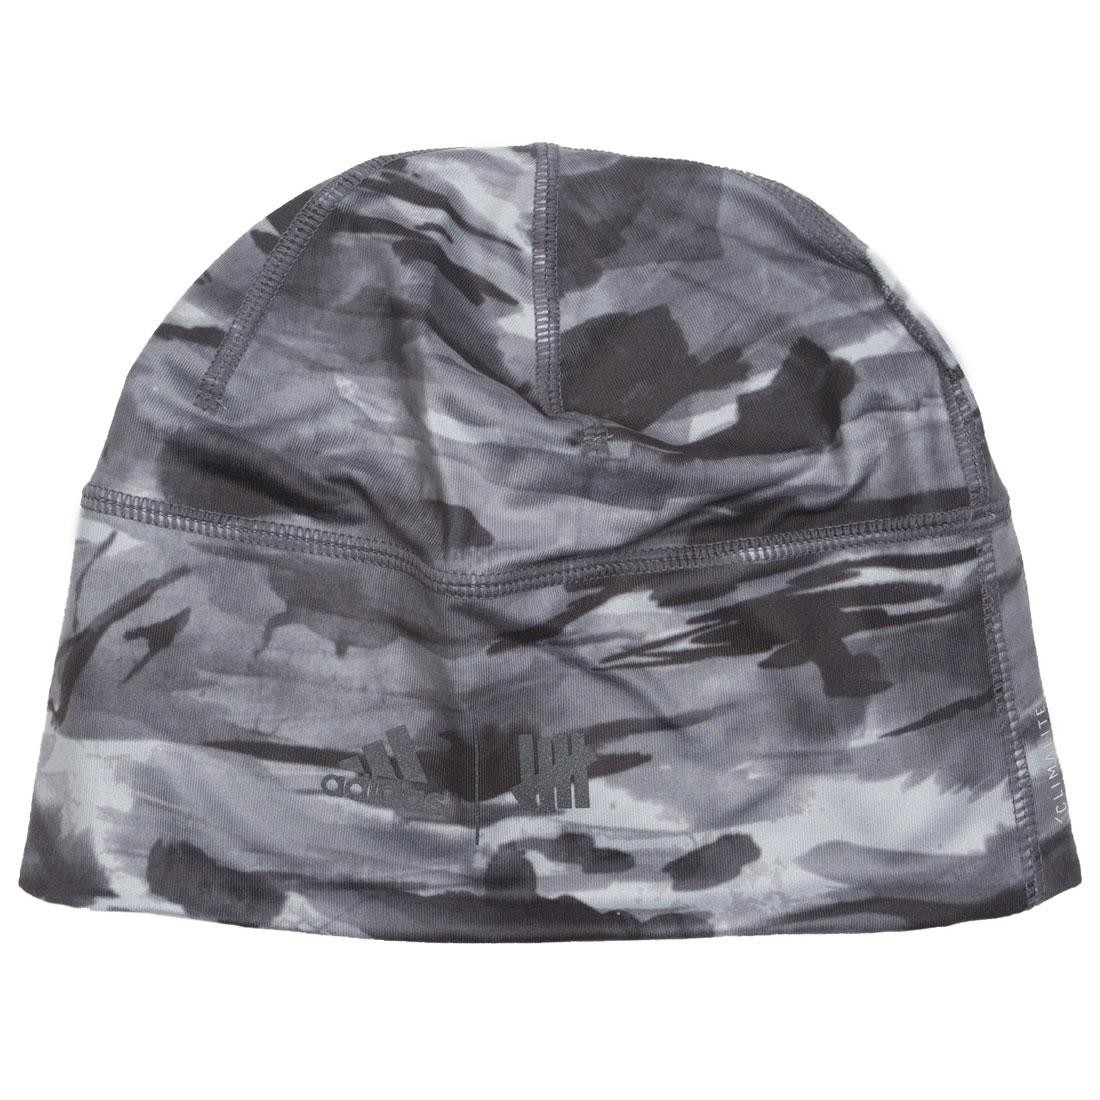 Adidas x Undefeated Running Beanie black reflective utility black shift grey a814532198a